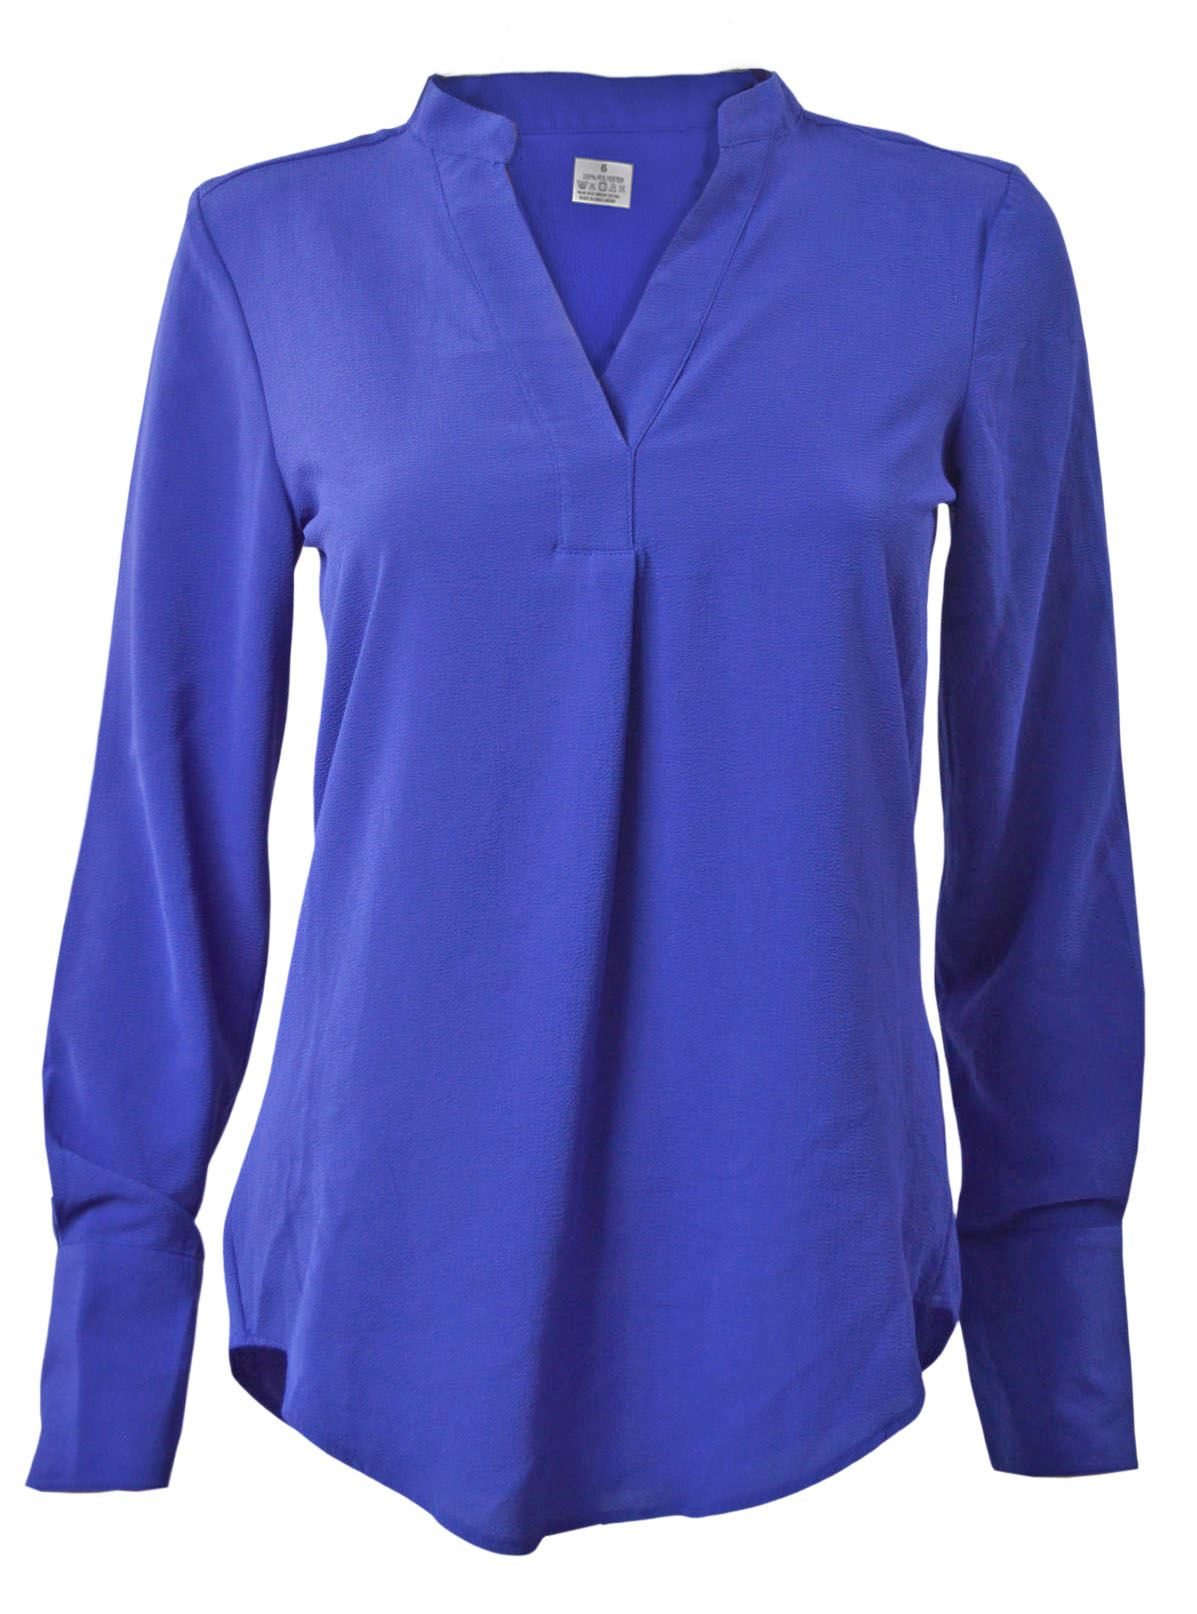 MARKS-amp-SPENCER-Womens-Long-Sleeve-V-Neck-Tunic-Blouse-Size-6-CLEARANCE thumbnail 21